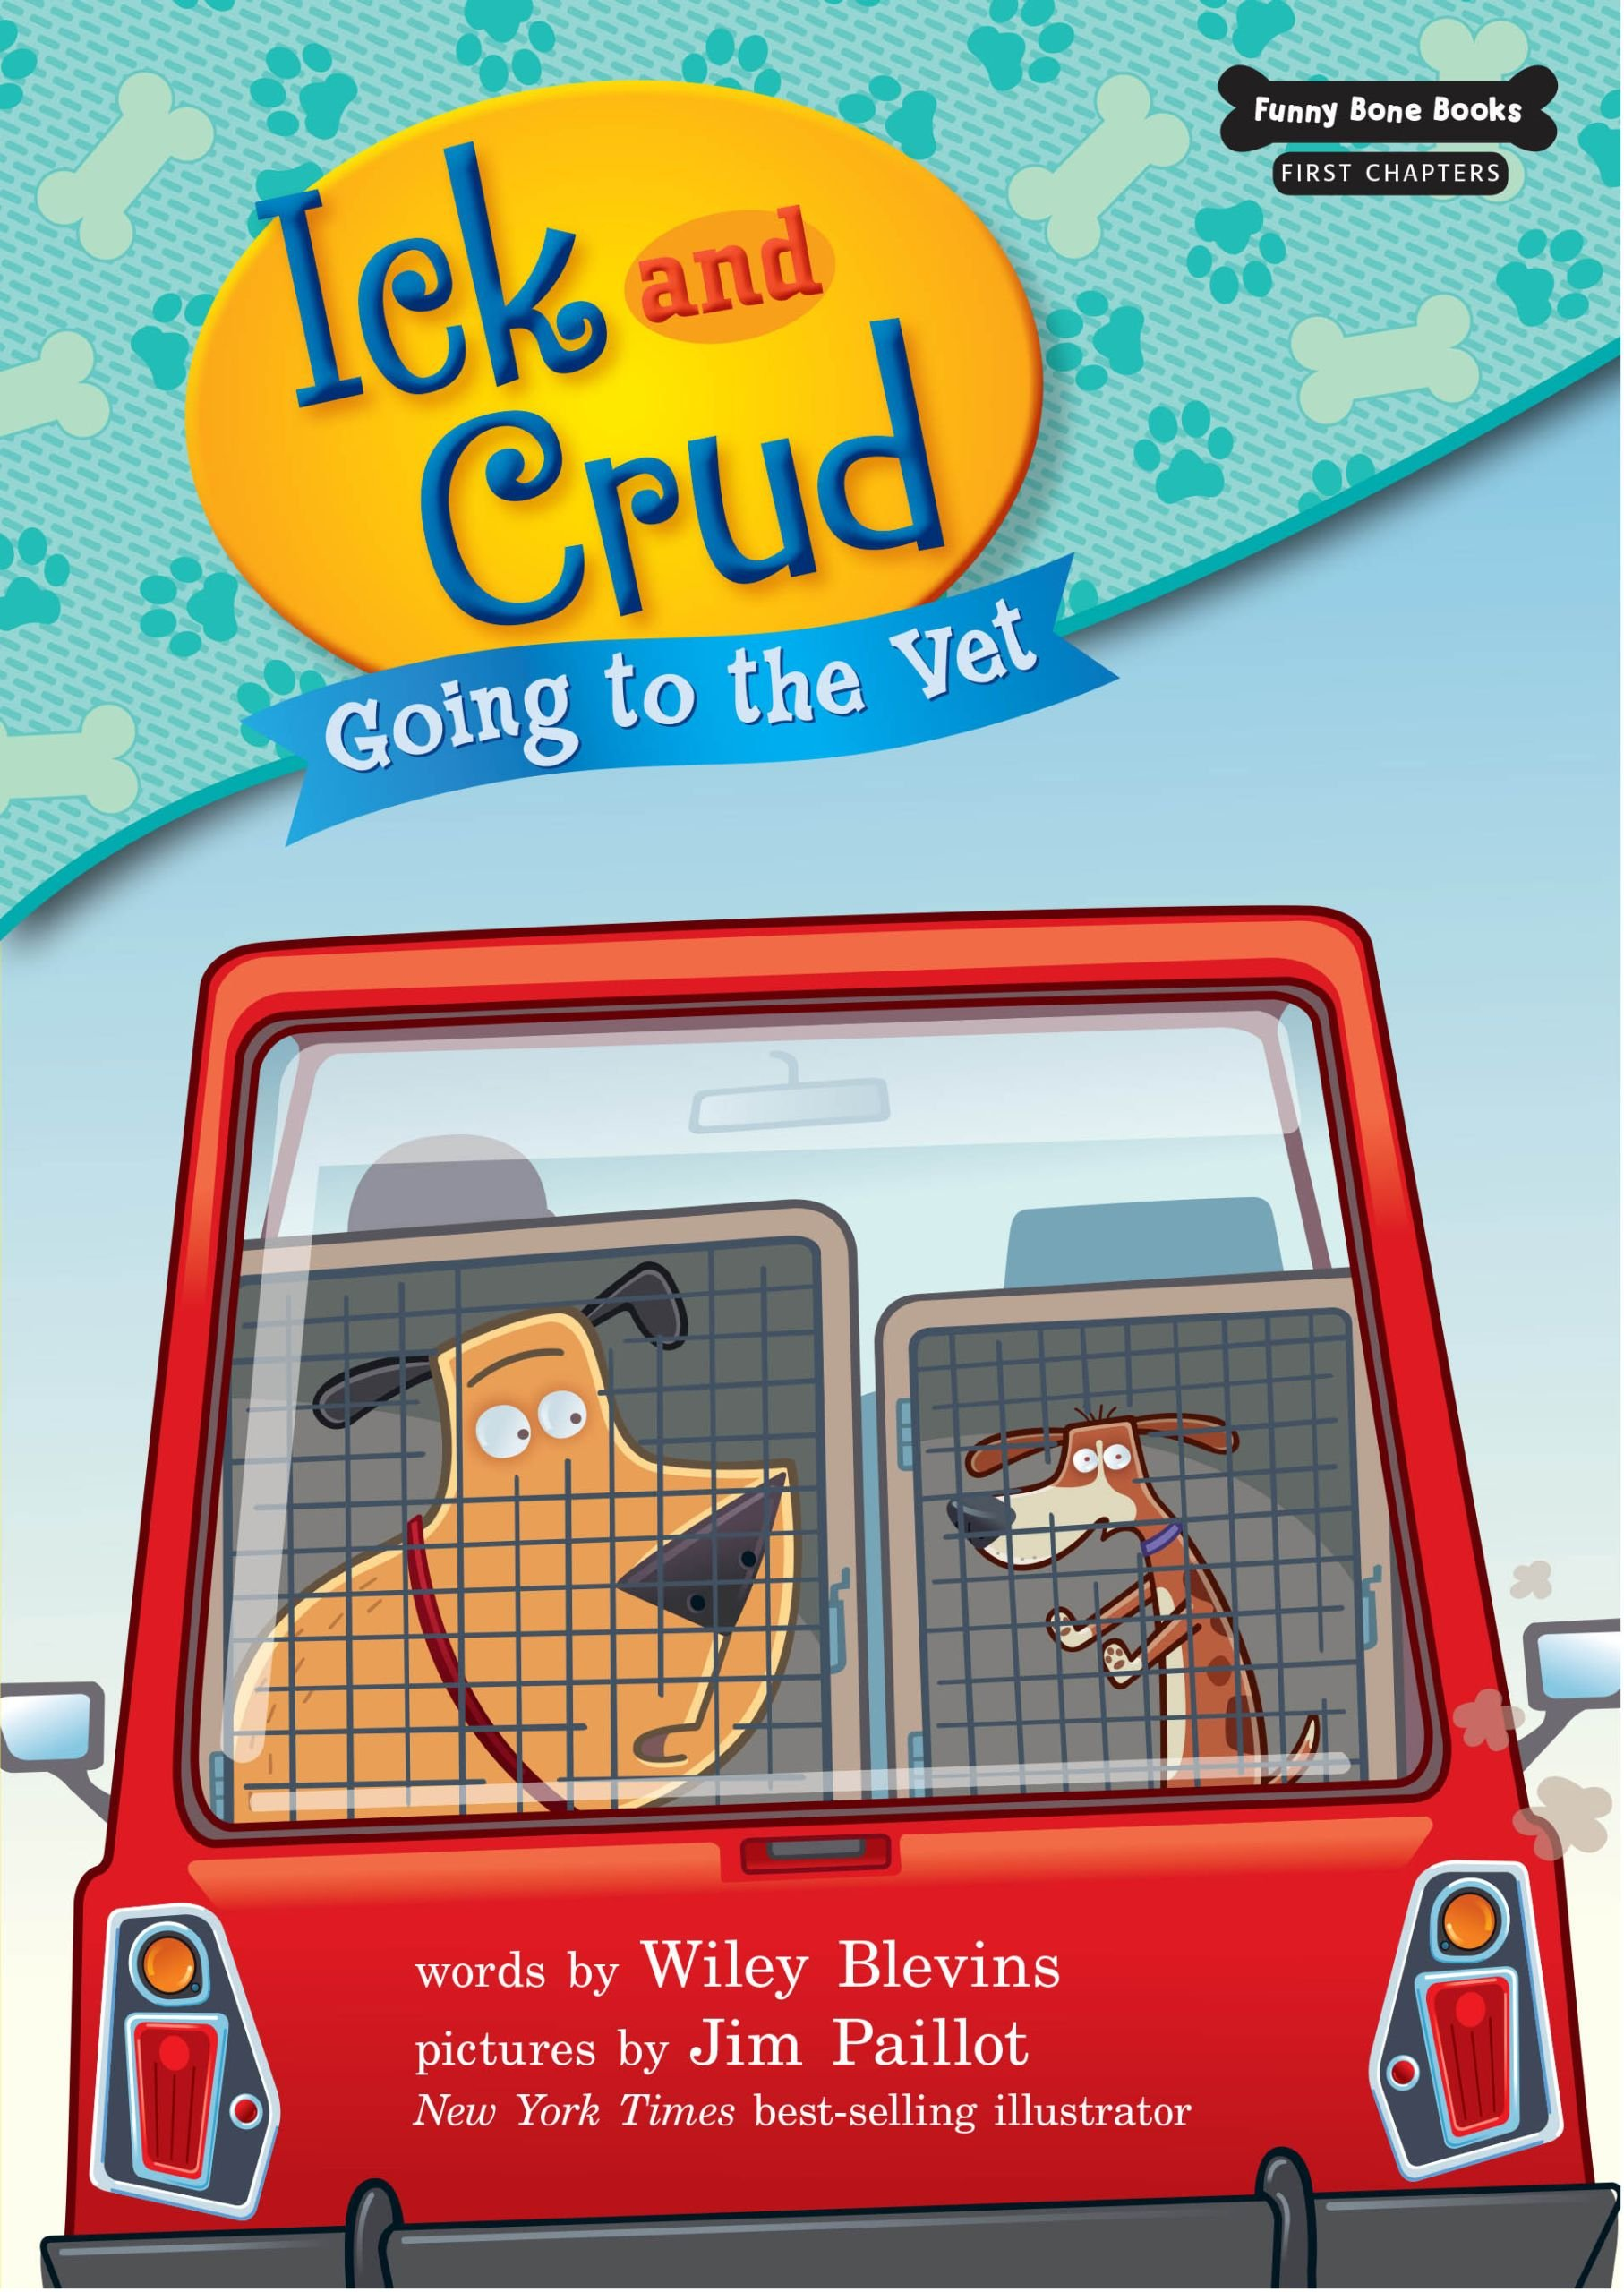 Going to the Vet (Ick and Crud: Funny Bone Books: First Chapters) ebook